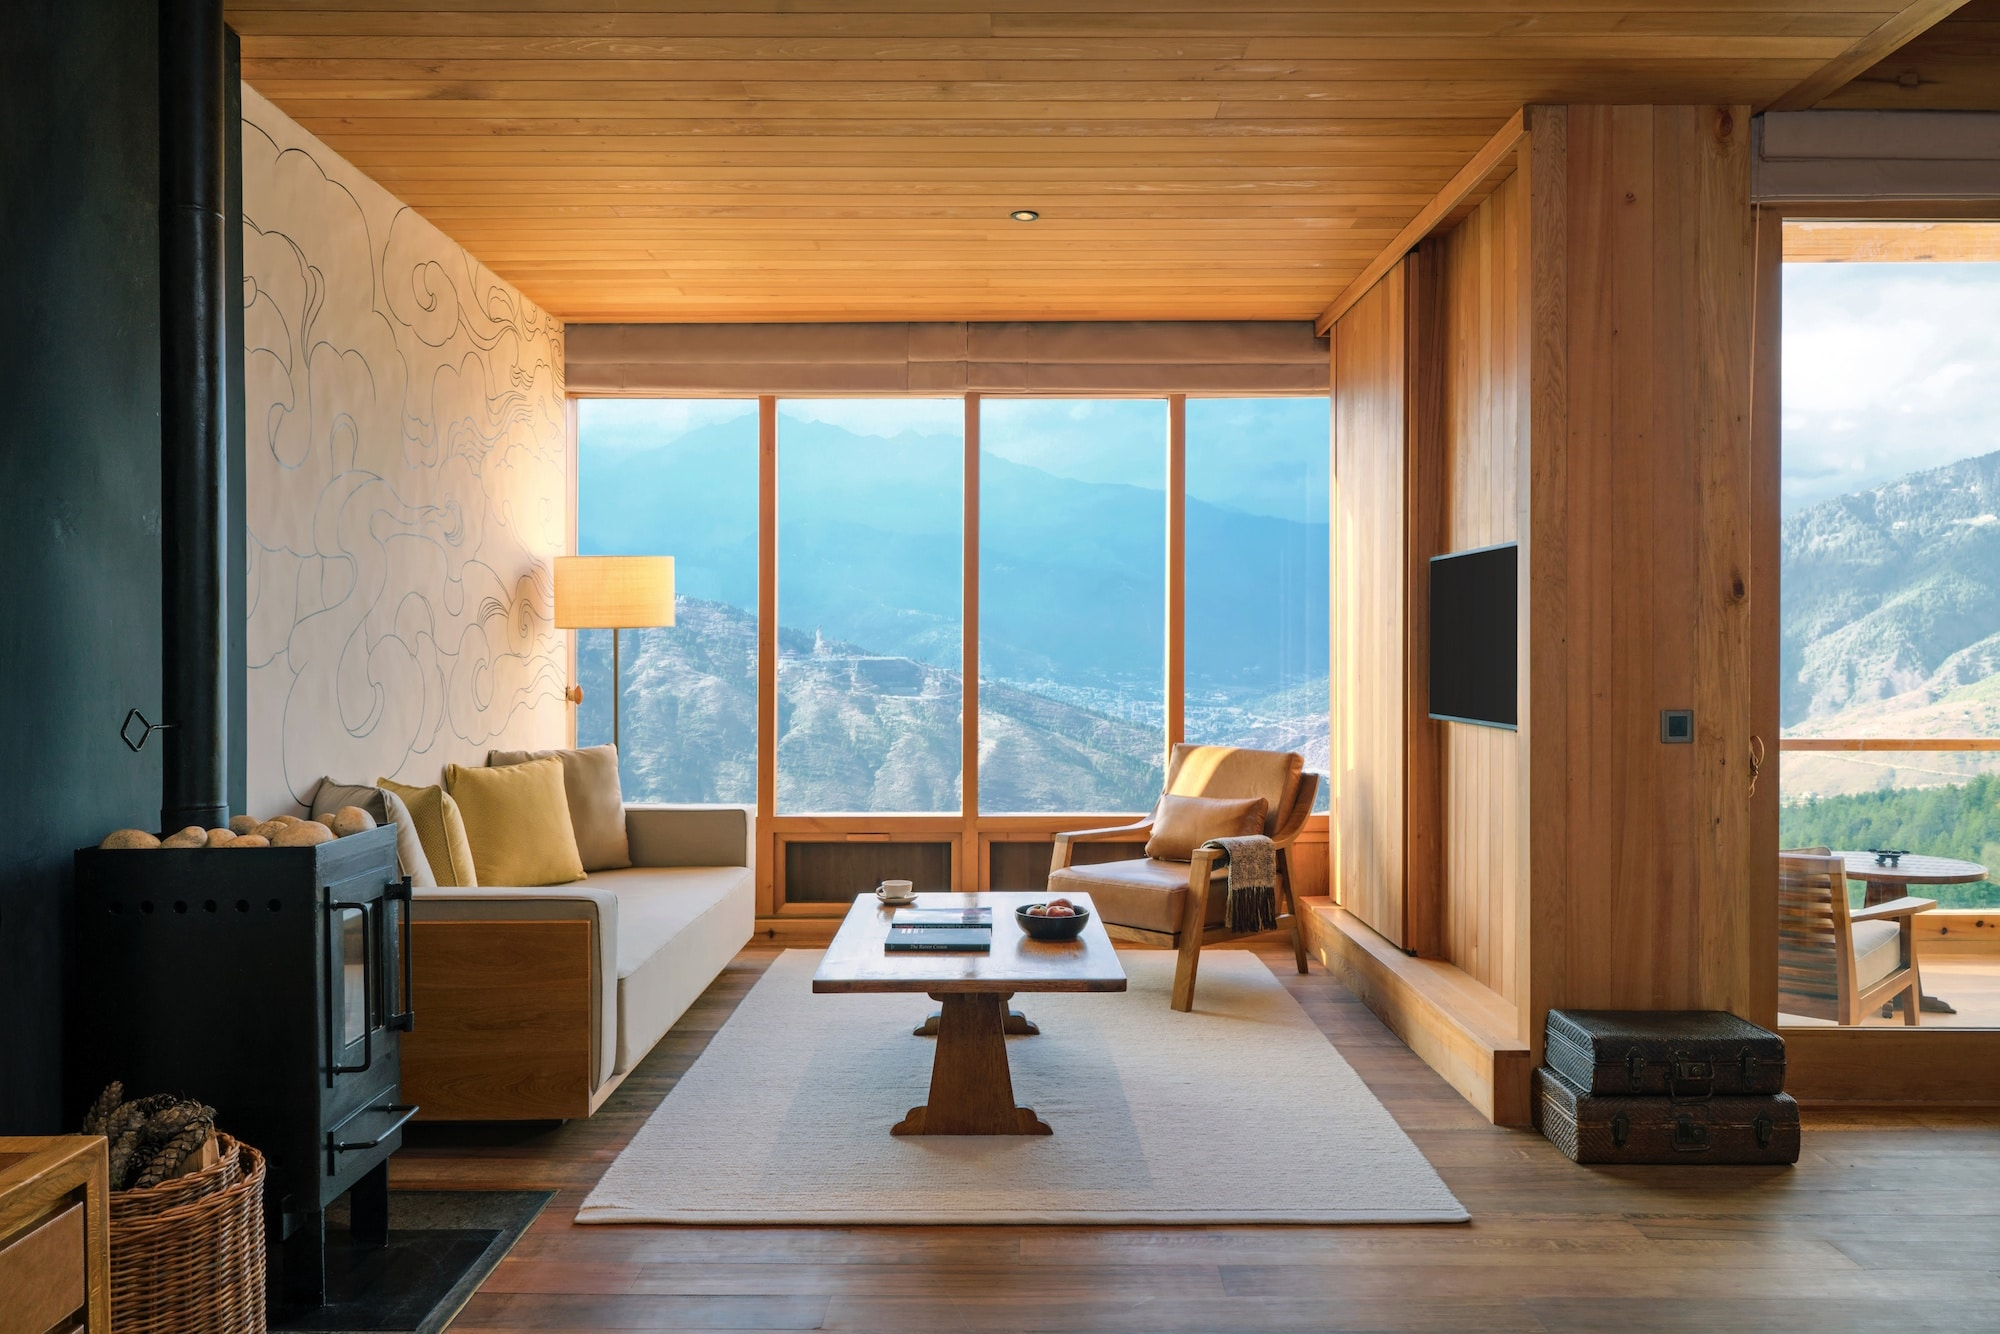 First look: Six Senses Bhutan finally opens with its first 3 lodges